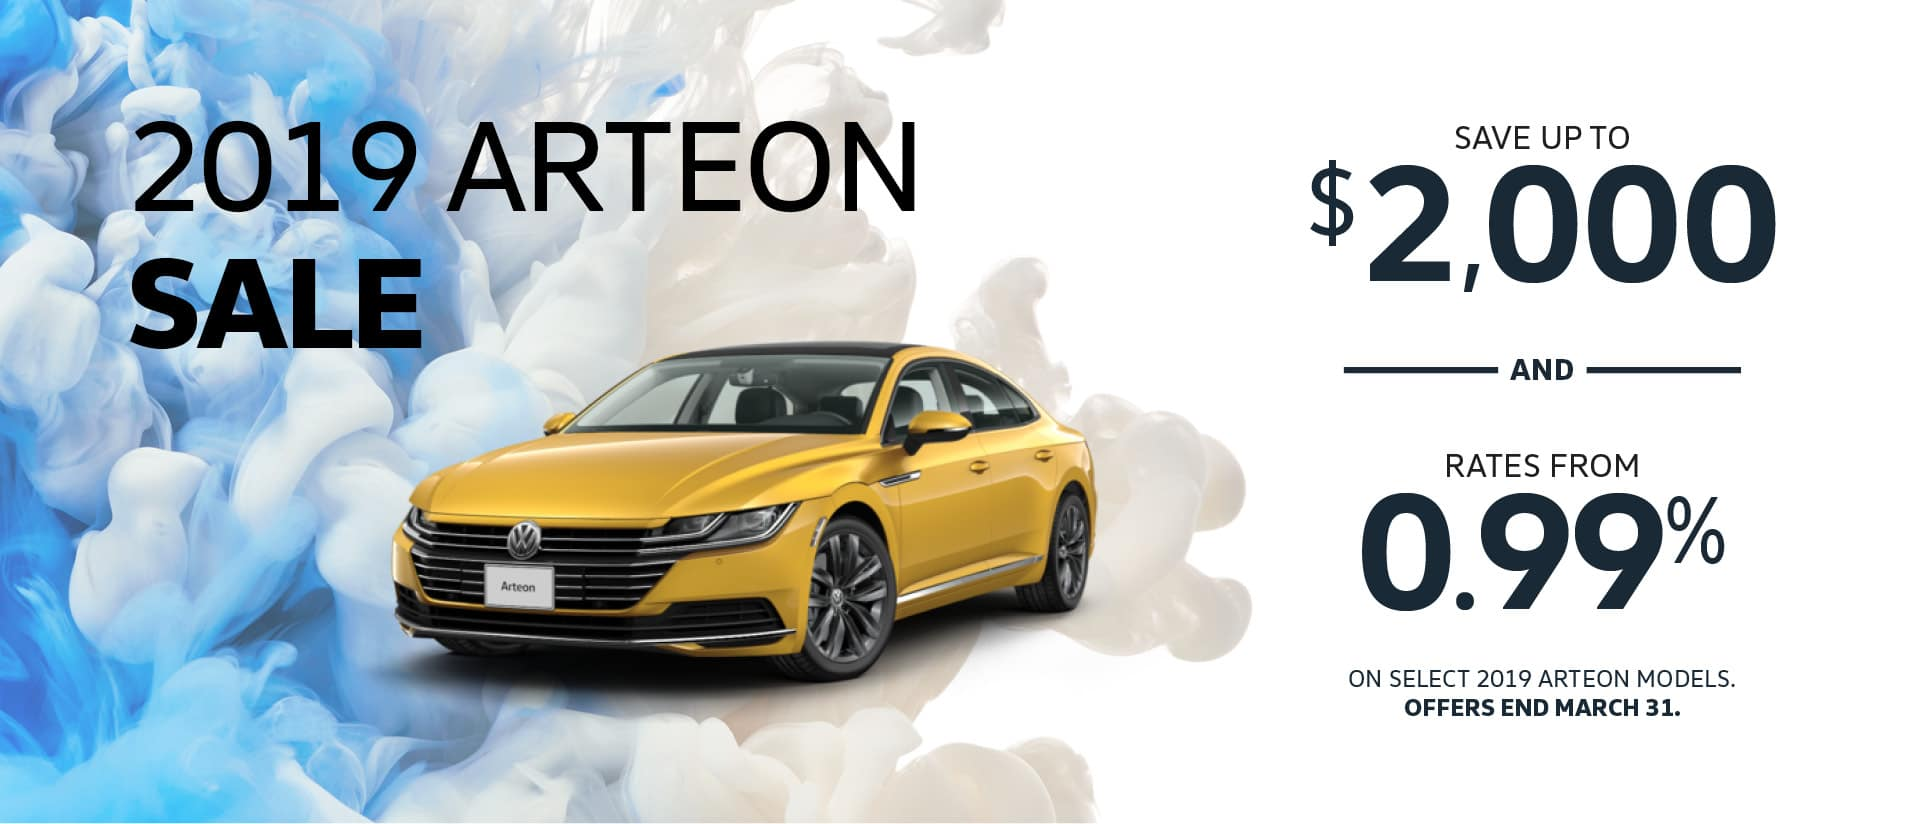 Arteon Offer